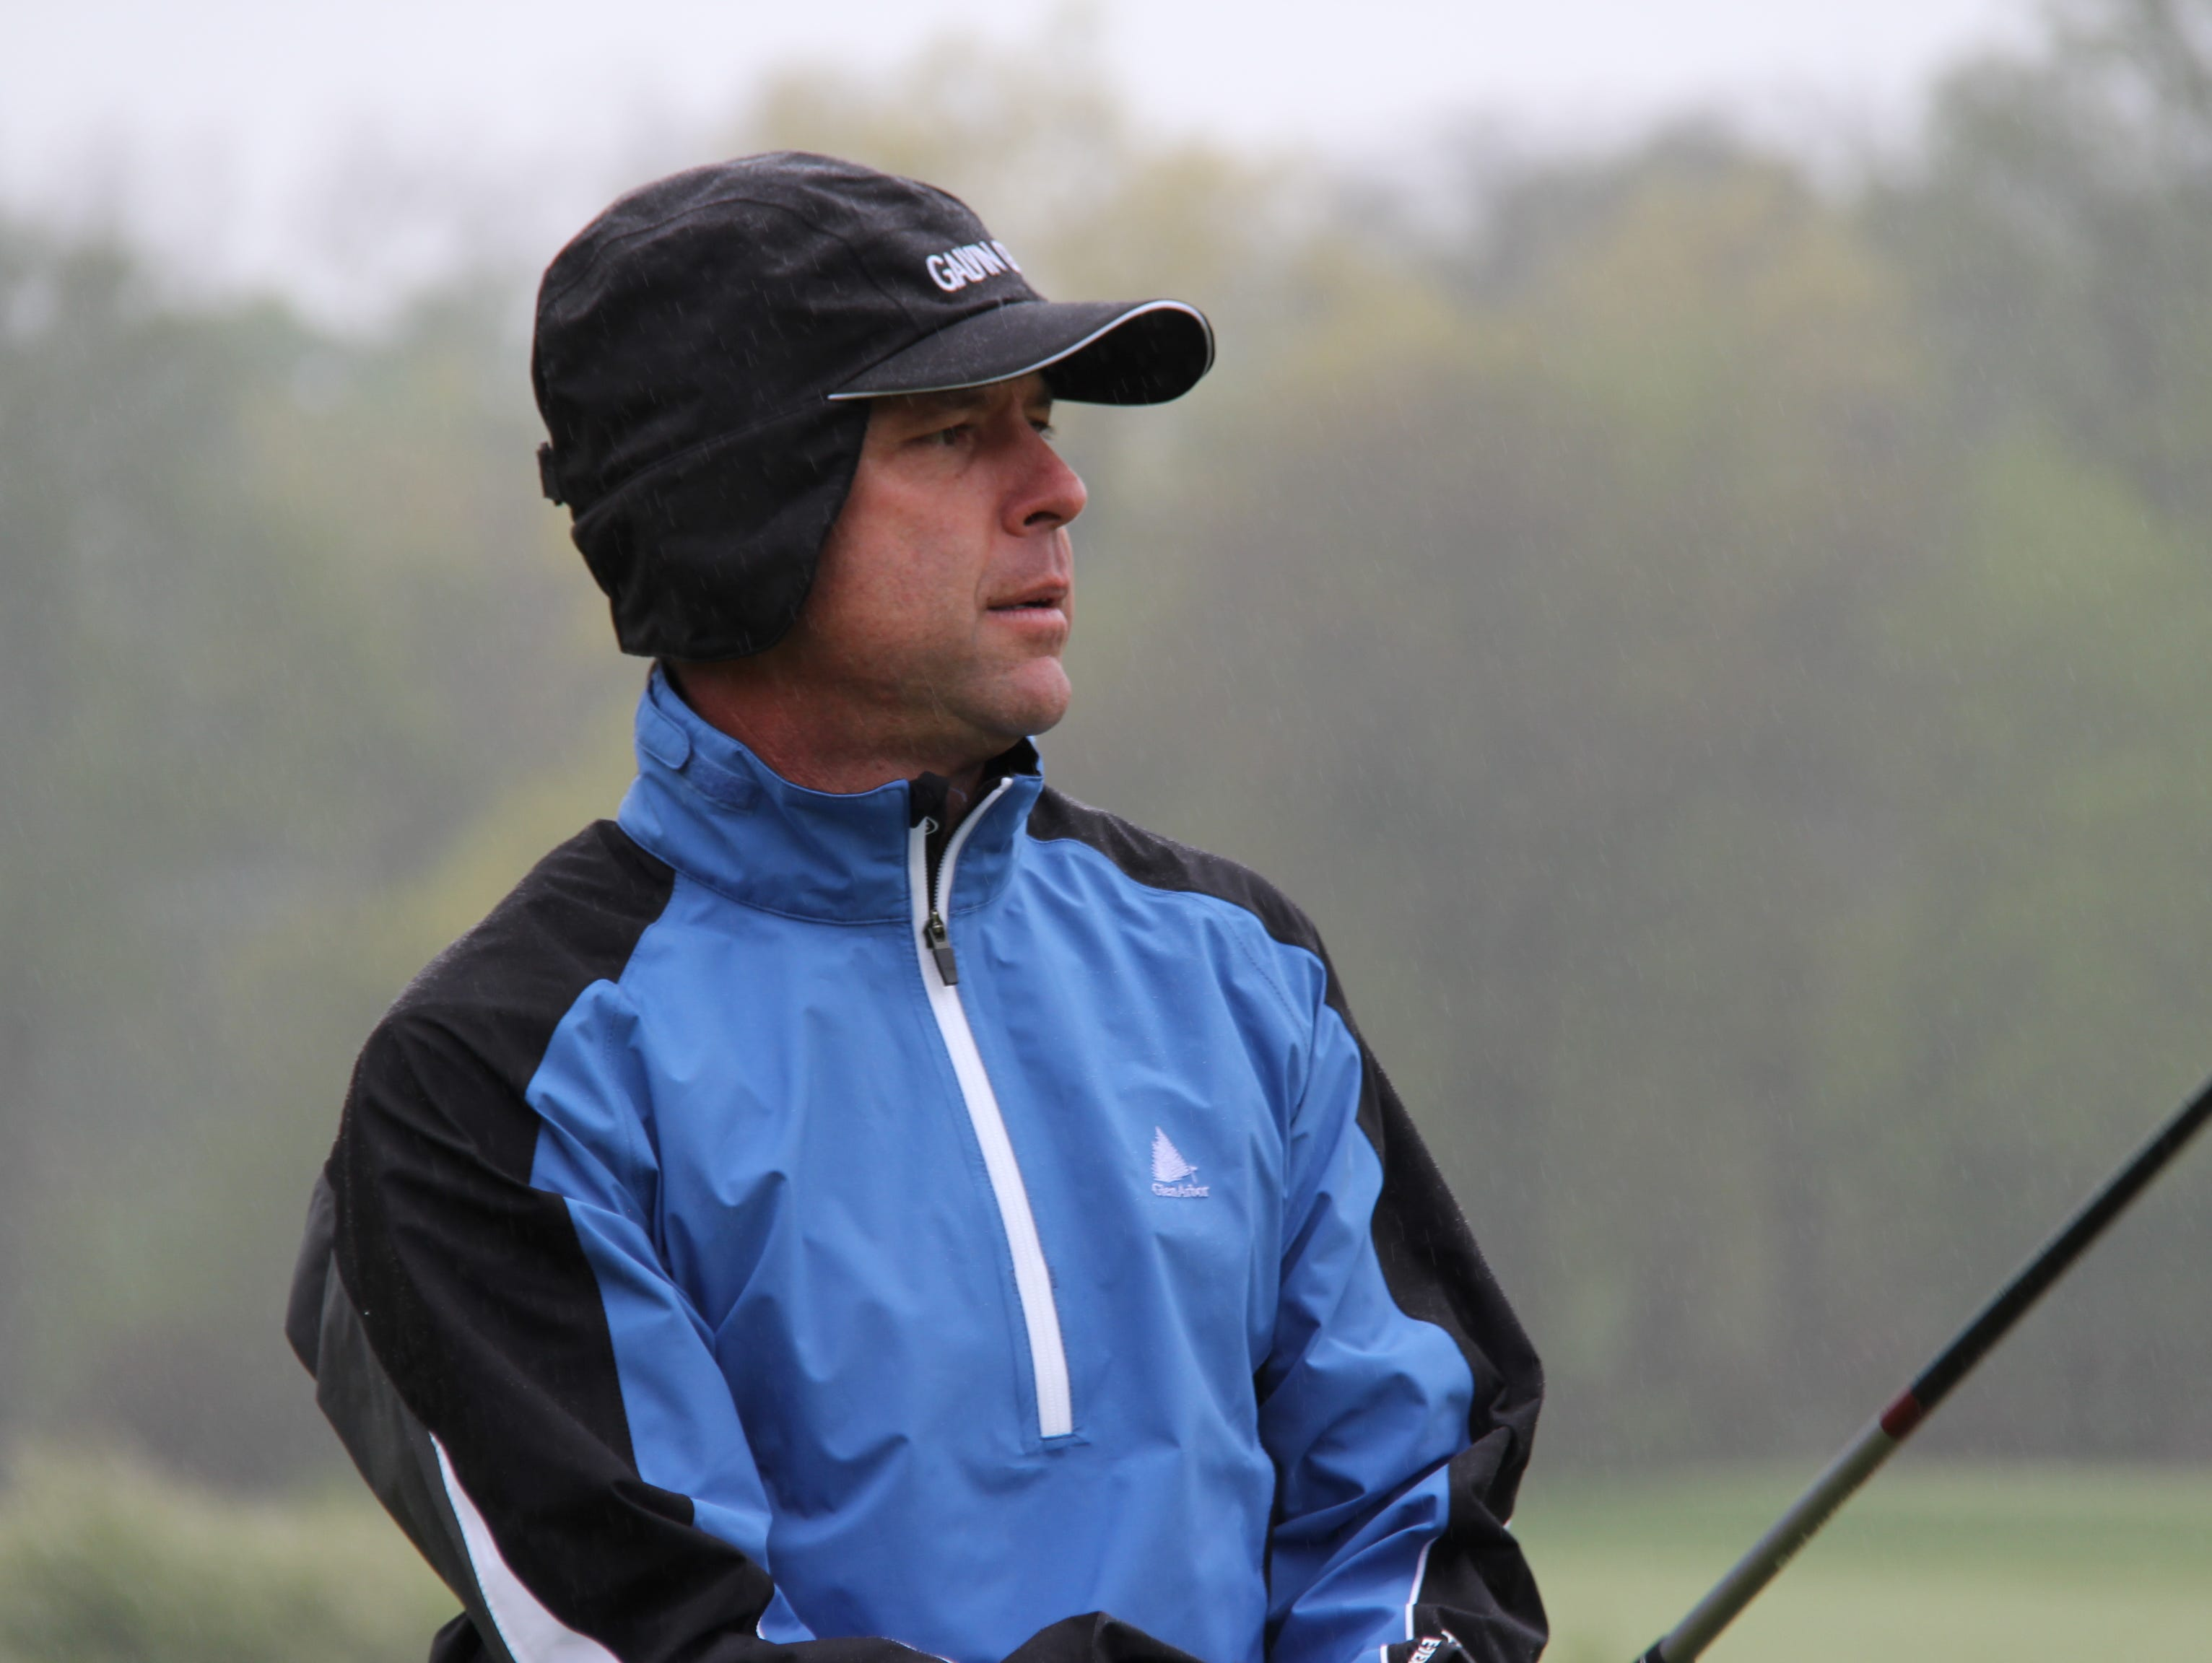 GlenArbor director of golf Rob Labritz won two matches on Tuesday at the MasterCard Westchester PGA Championship